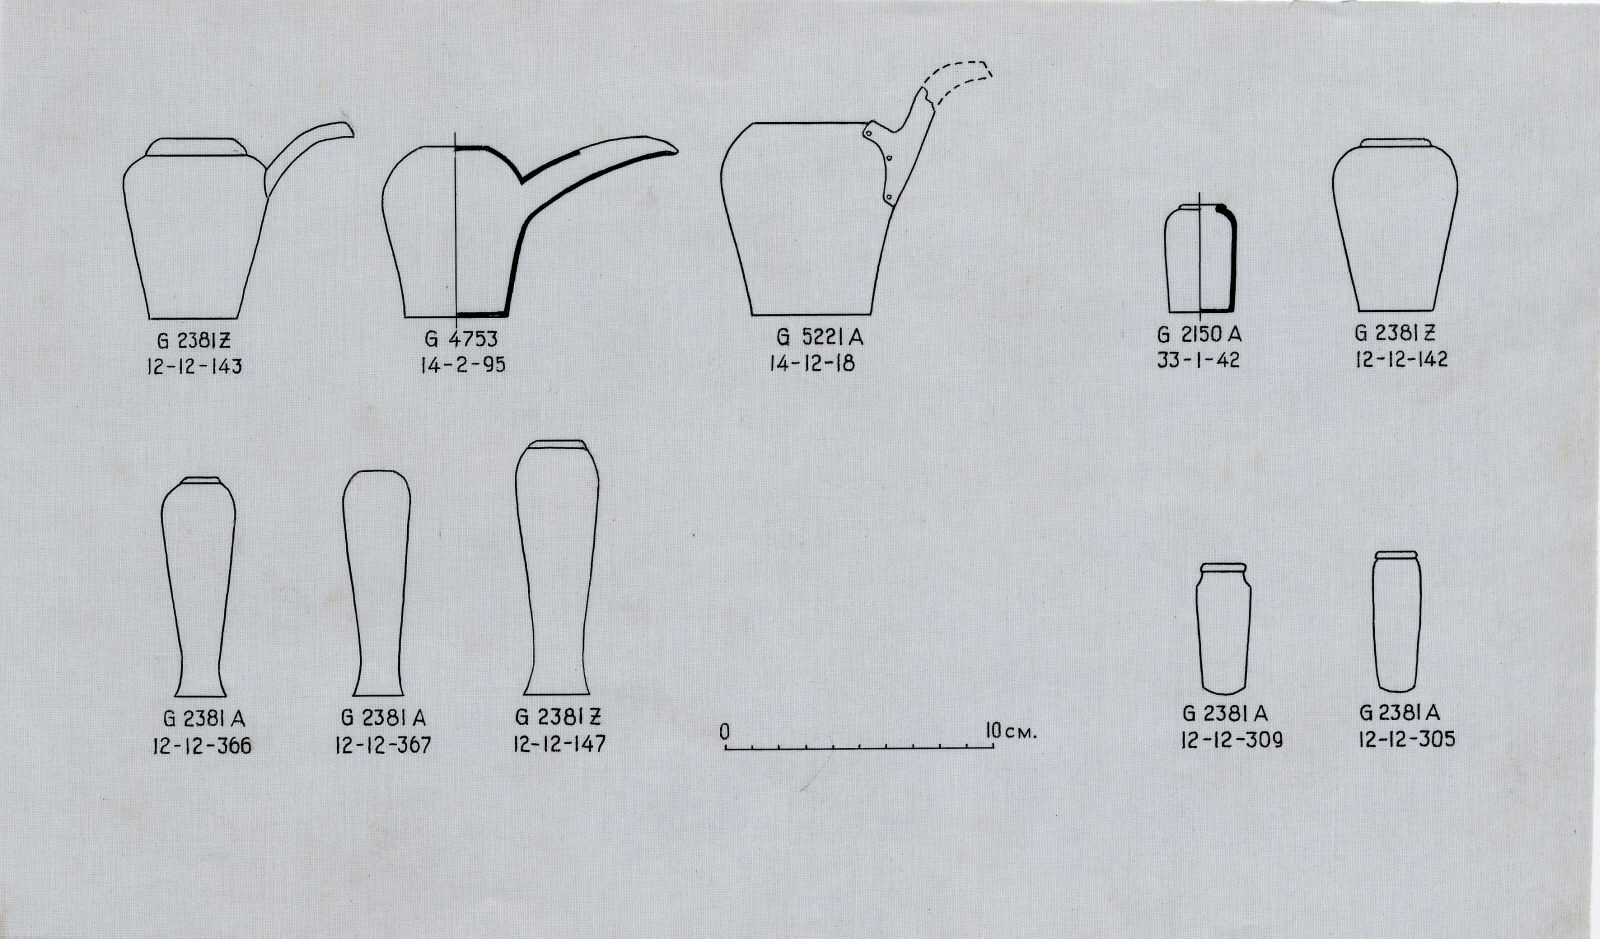 Drawings: Objects, copper, from G 4733 (mislabeled G 4753); G 2381, Shaft Z; G 5221, Shaft A